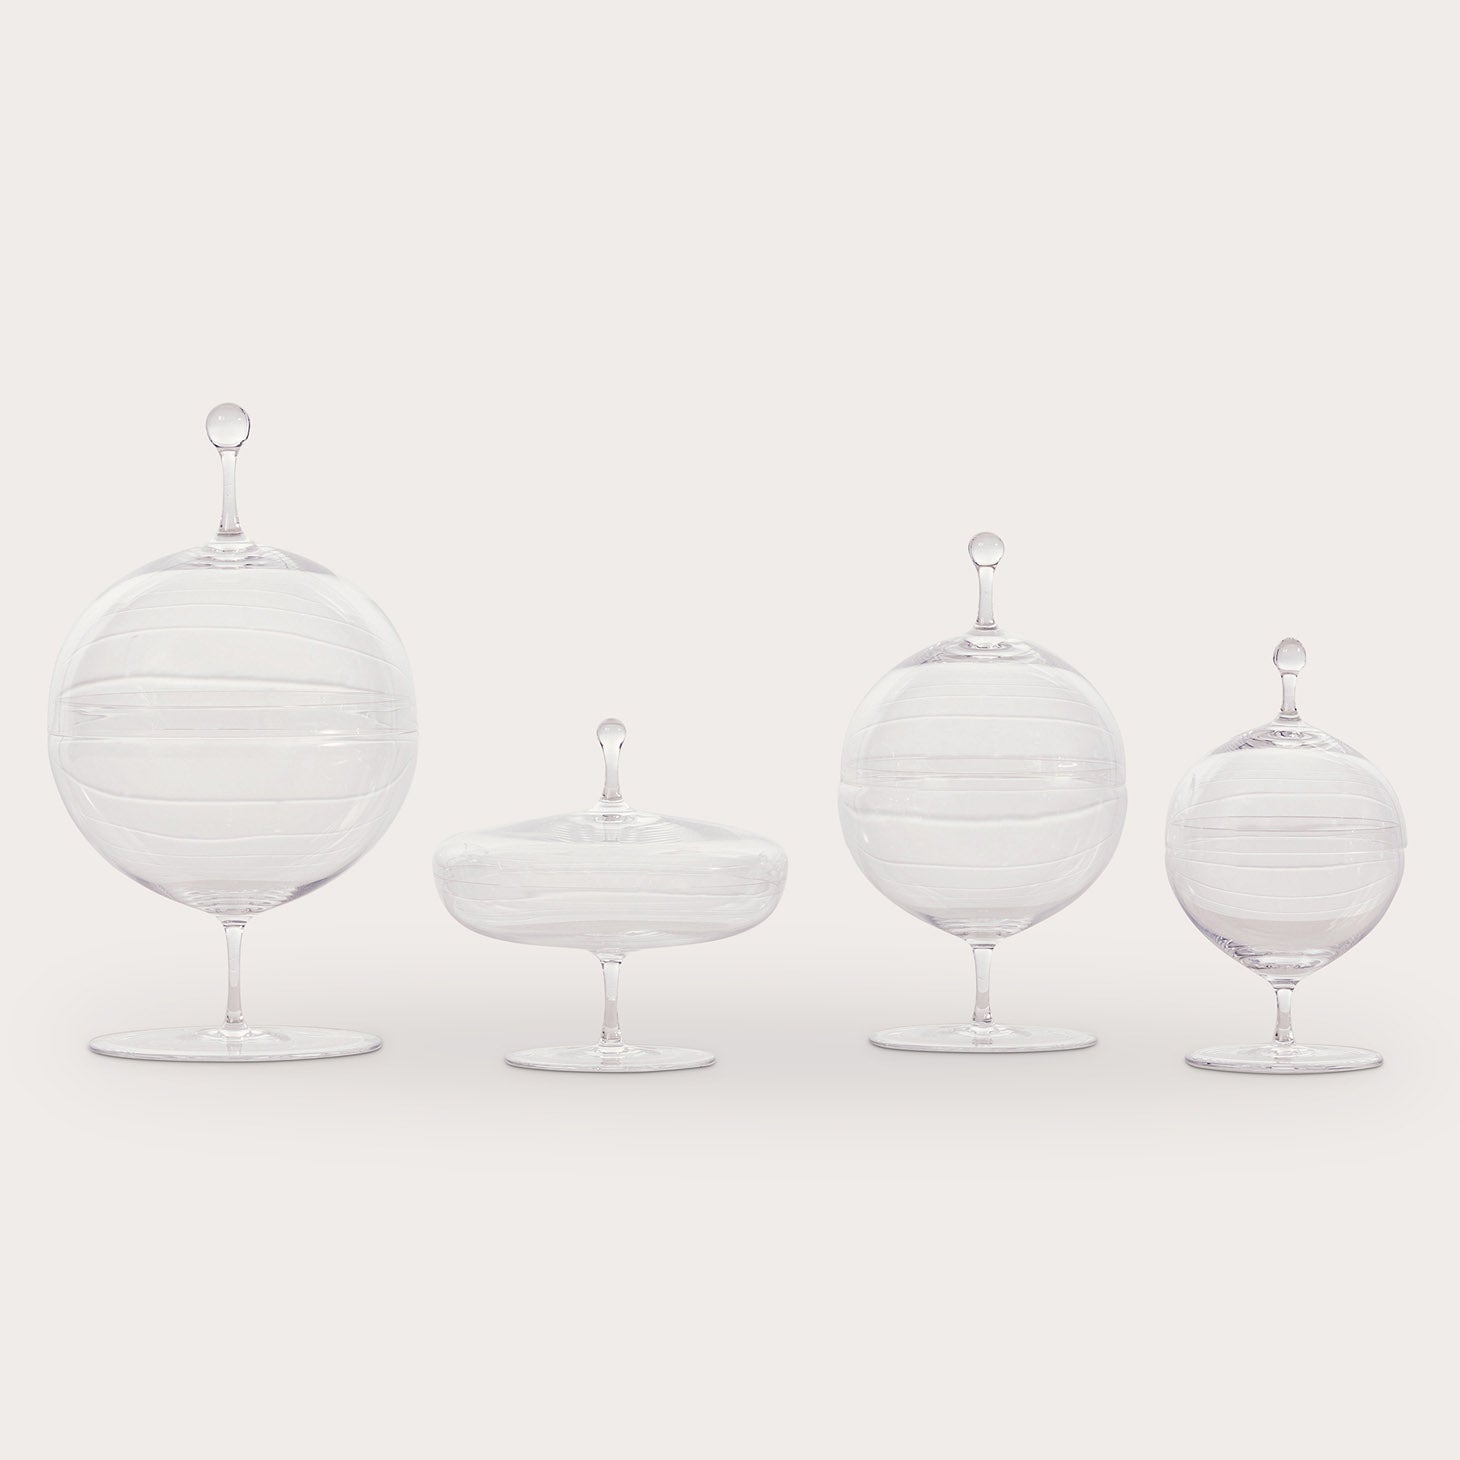 Candy Dishes Accessories Lobmeyr Designer Furniture Sku: 220-100-10179